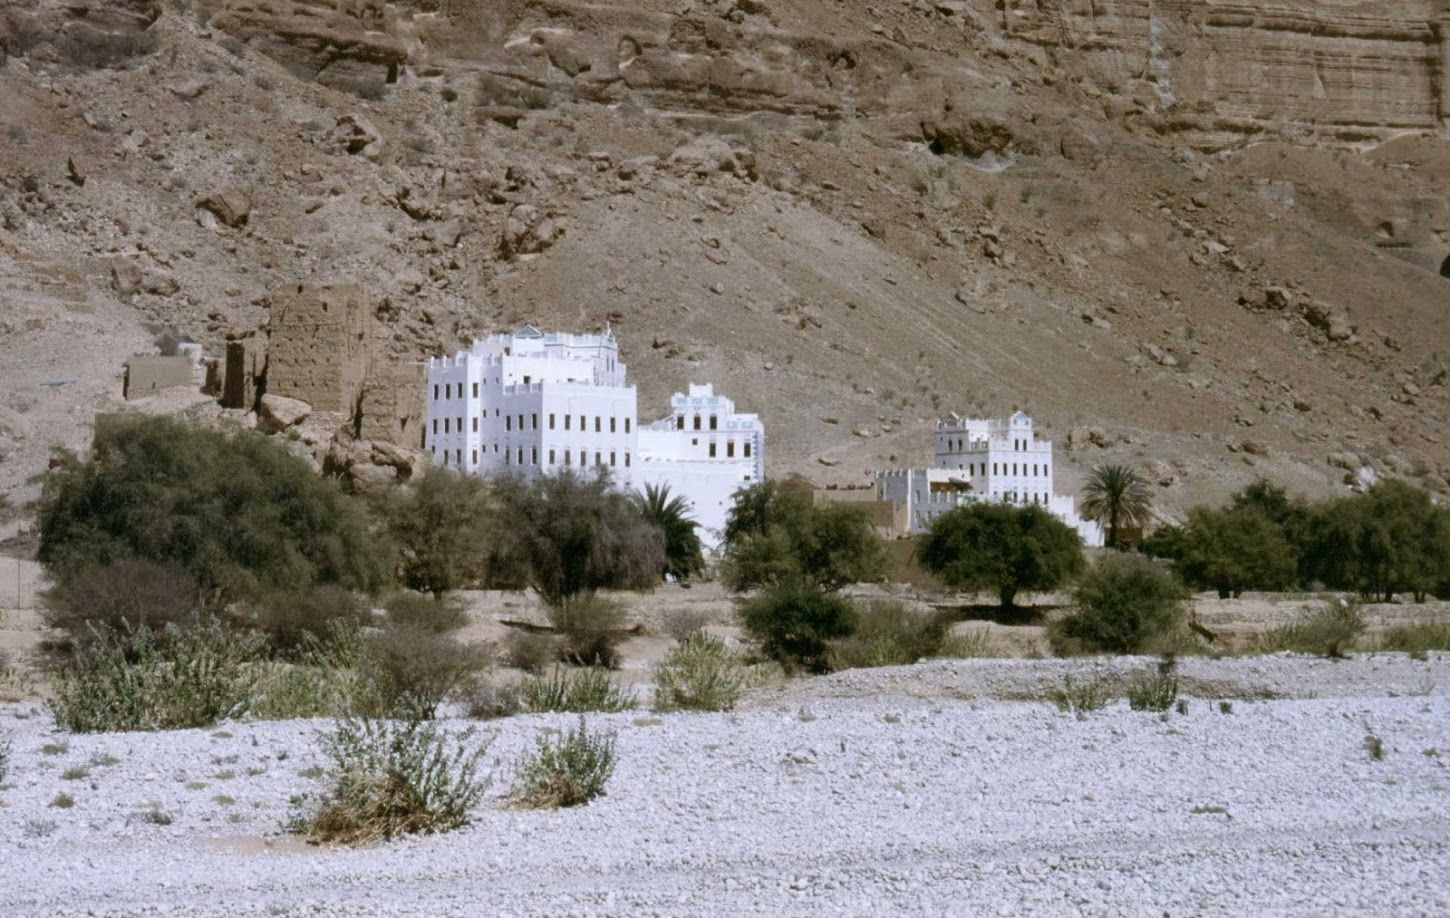 Wadi Do'an